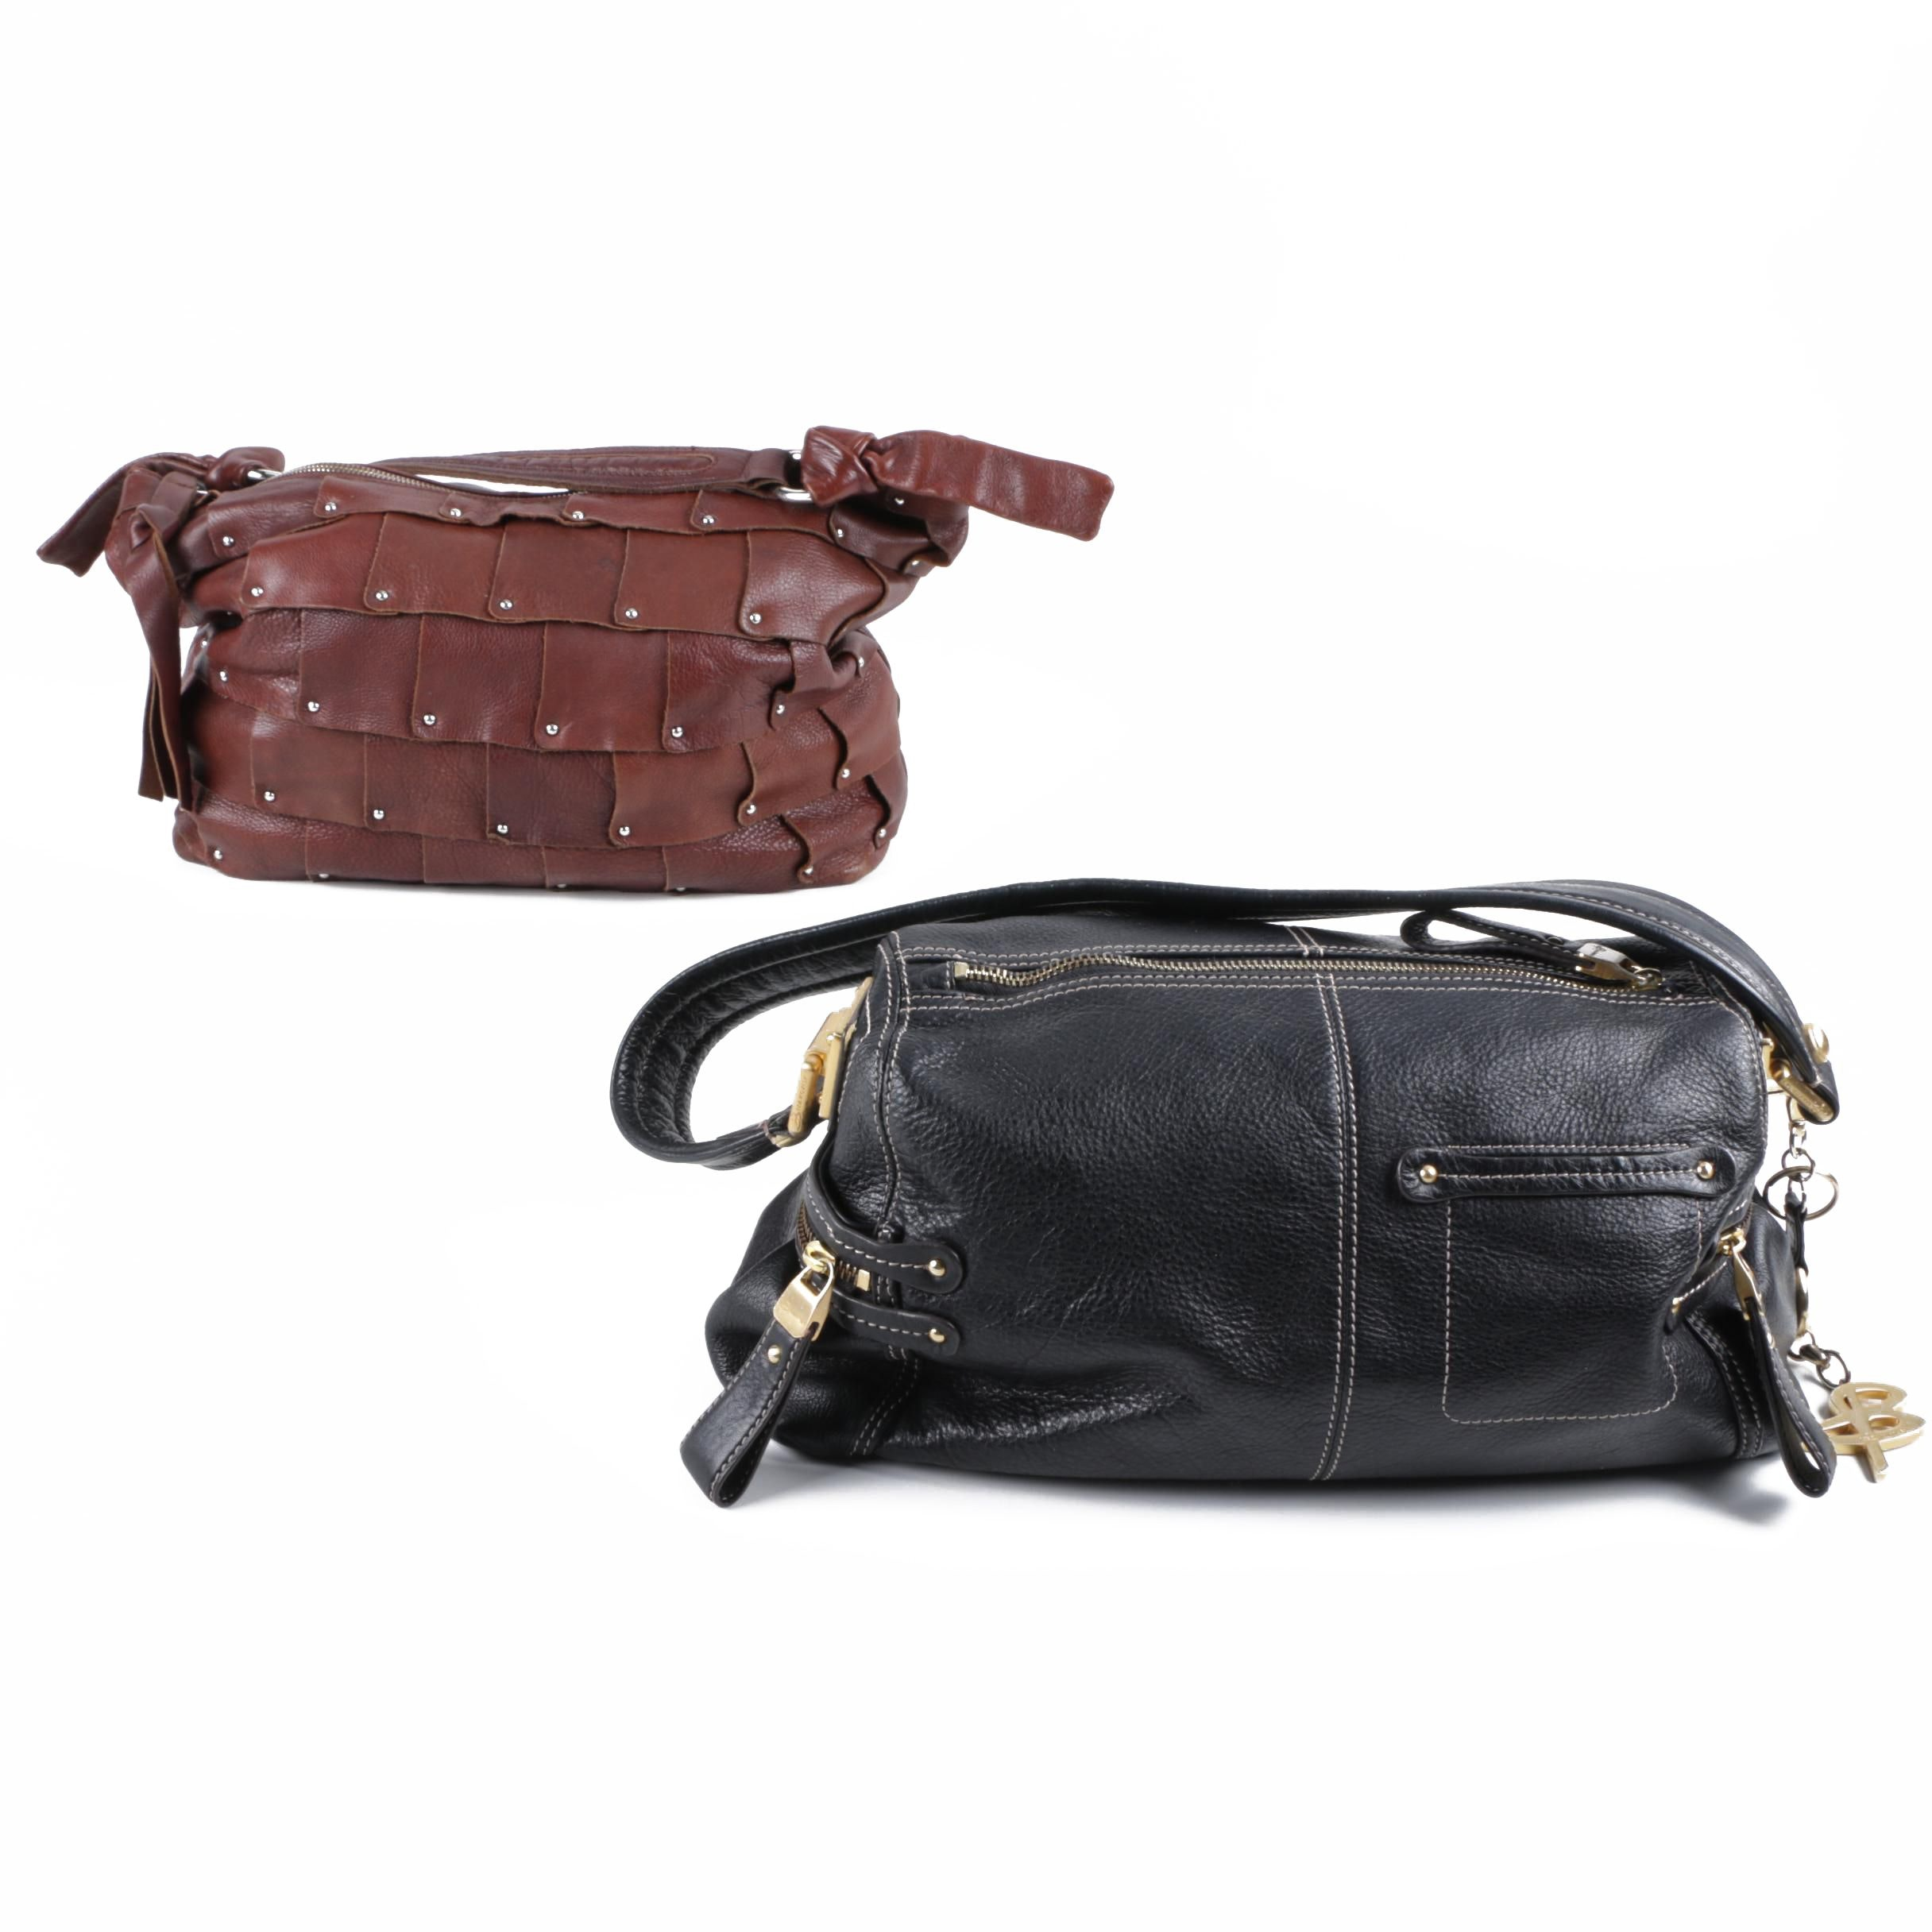 B. Makowsky Black and Brown Leather Handbags